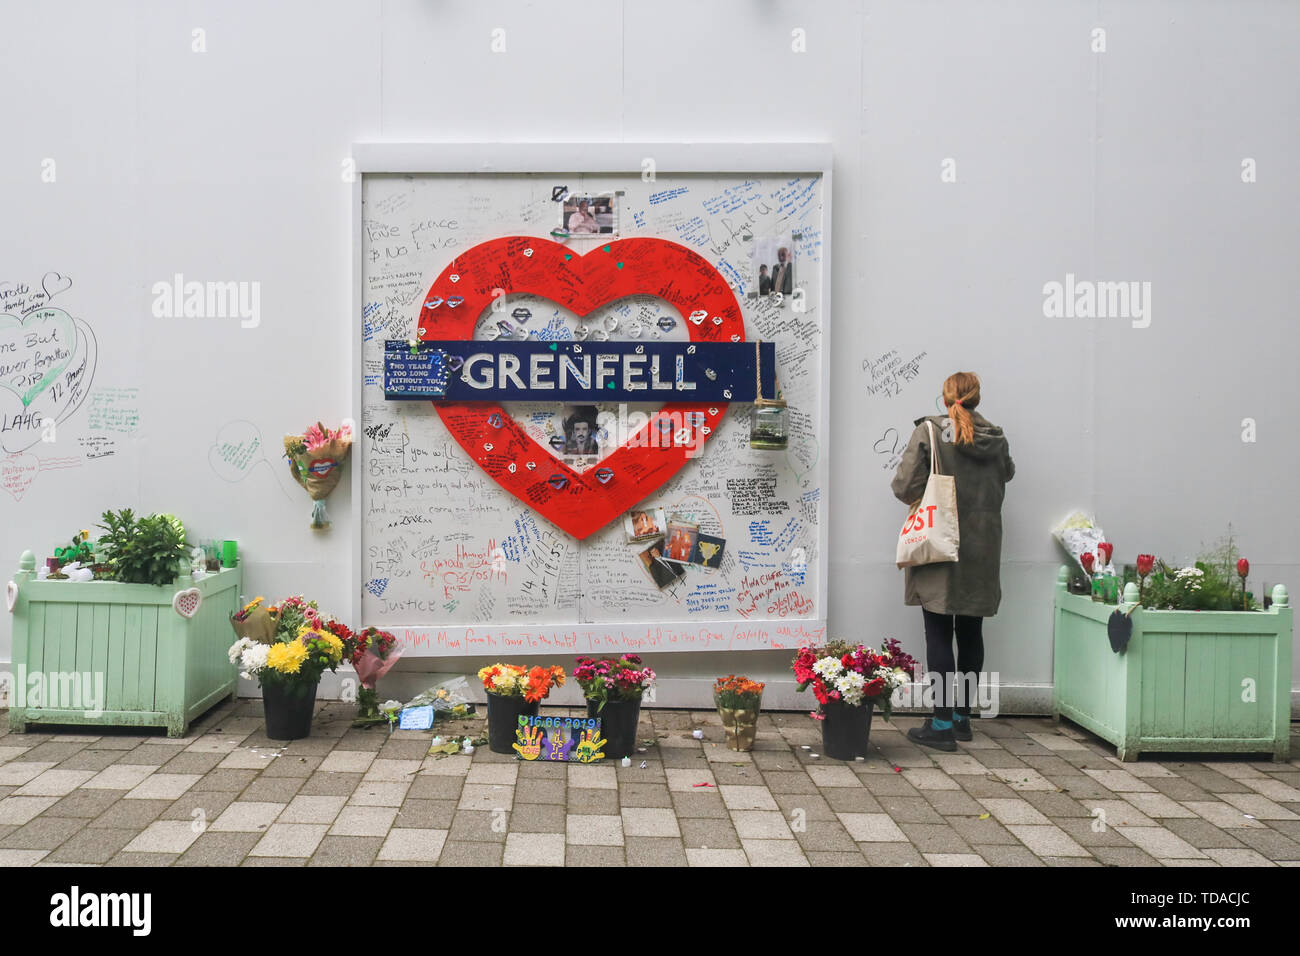 London, UK. 13th June, 2019. A member of the public writes a message at the memorial to the Grenfell fire victims on the second anniversary of the devastating inferno fire which in the residential tower block in West London on 14 June 2017 Credit: amer ghazzal/Alamy Live News - Stock Image